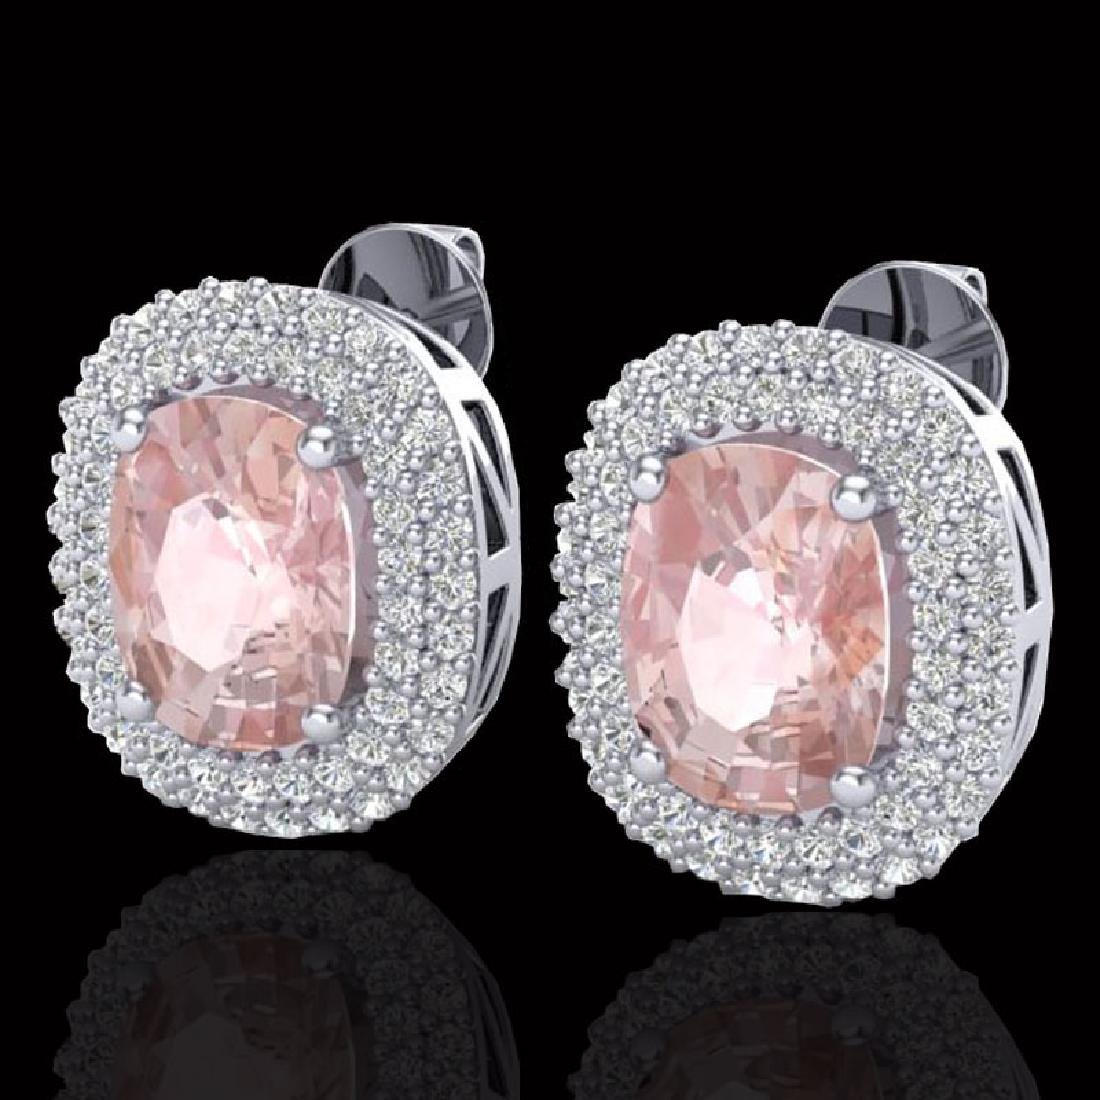 5.50 CTW Morganite & Micro Pave VS/SI Diamond Halo